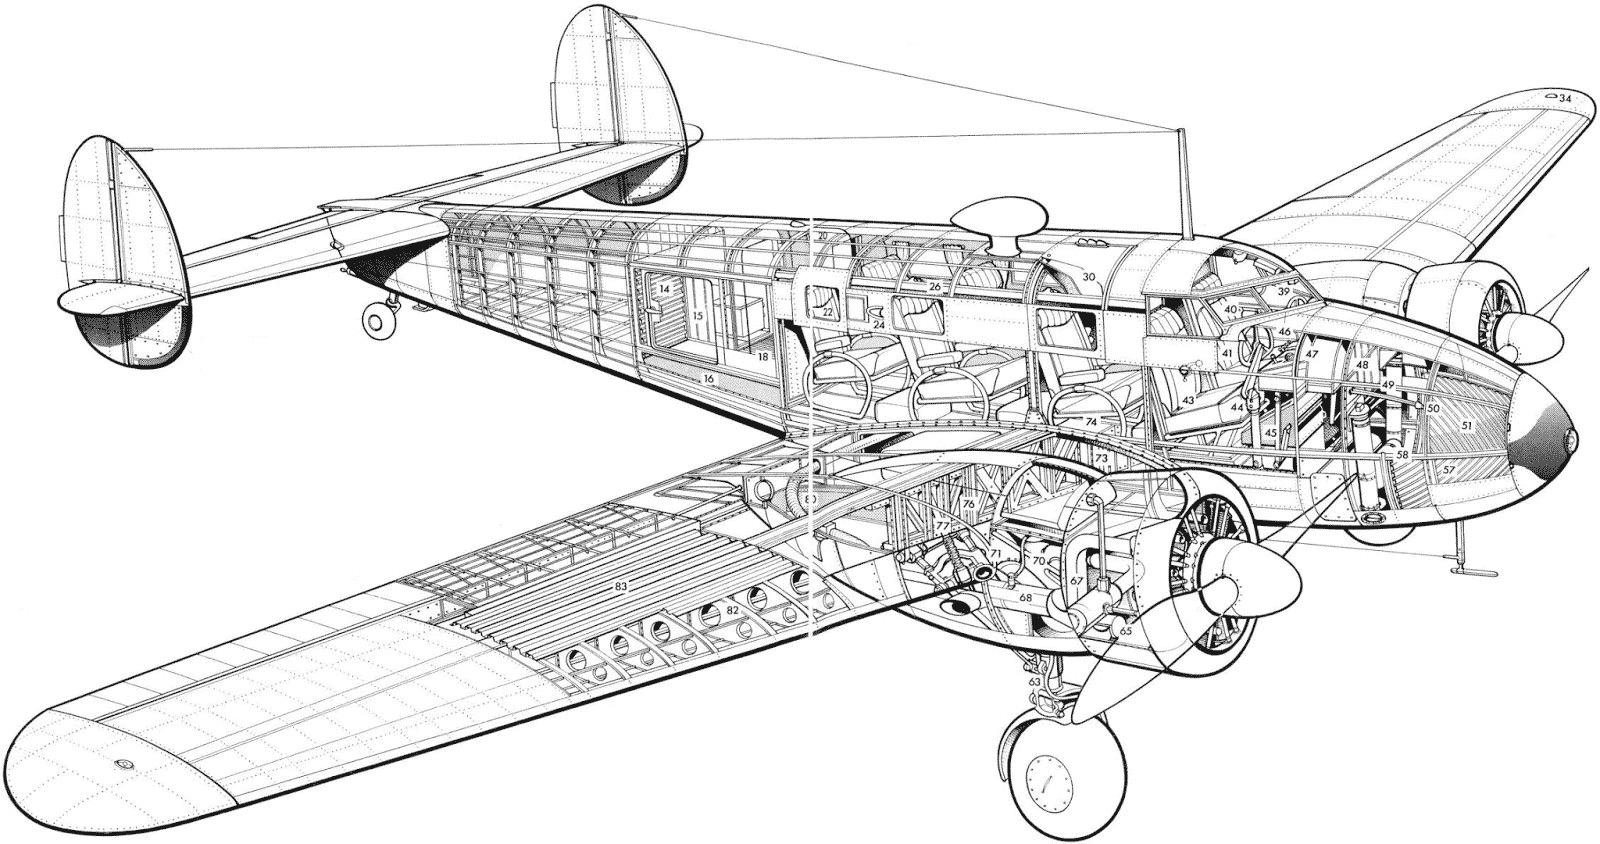 A Comprehensively Restored Lockheed Model 12